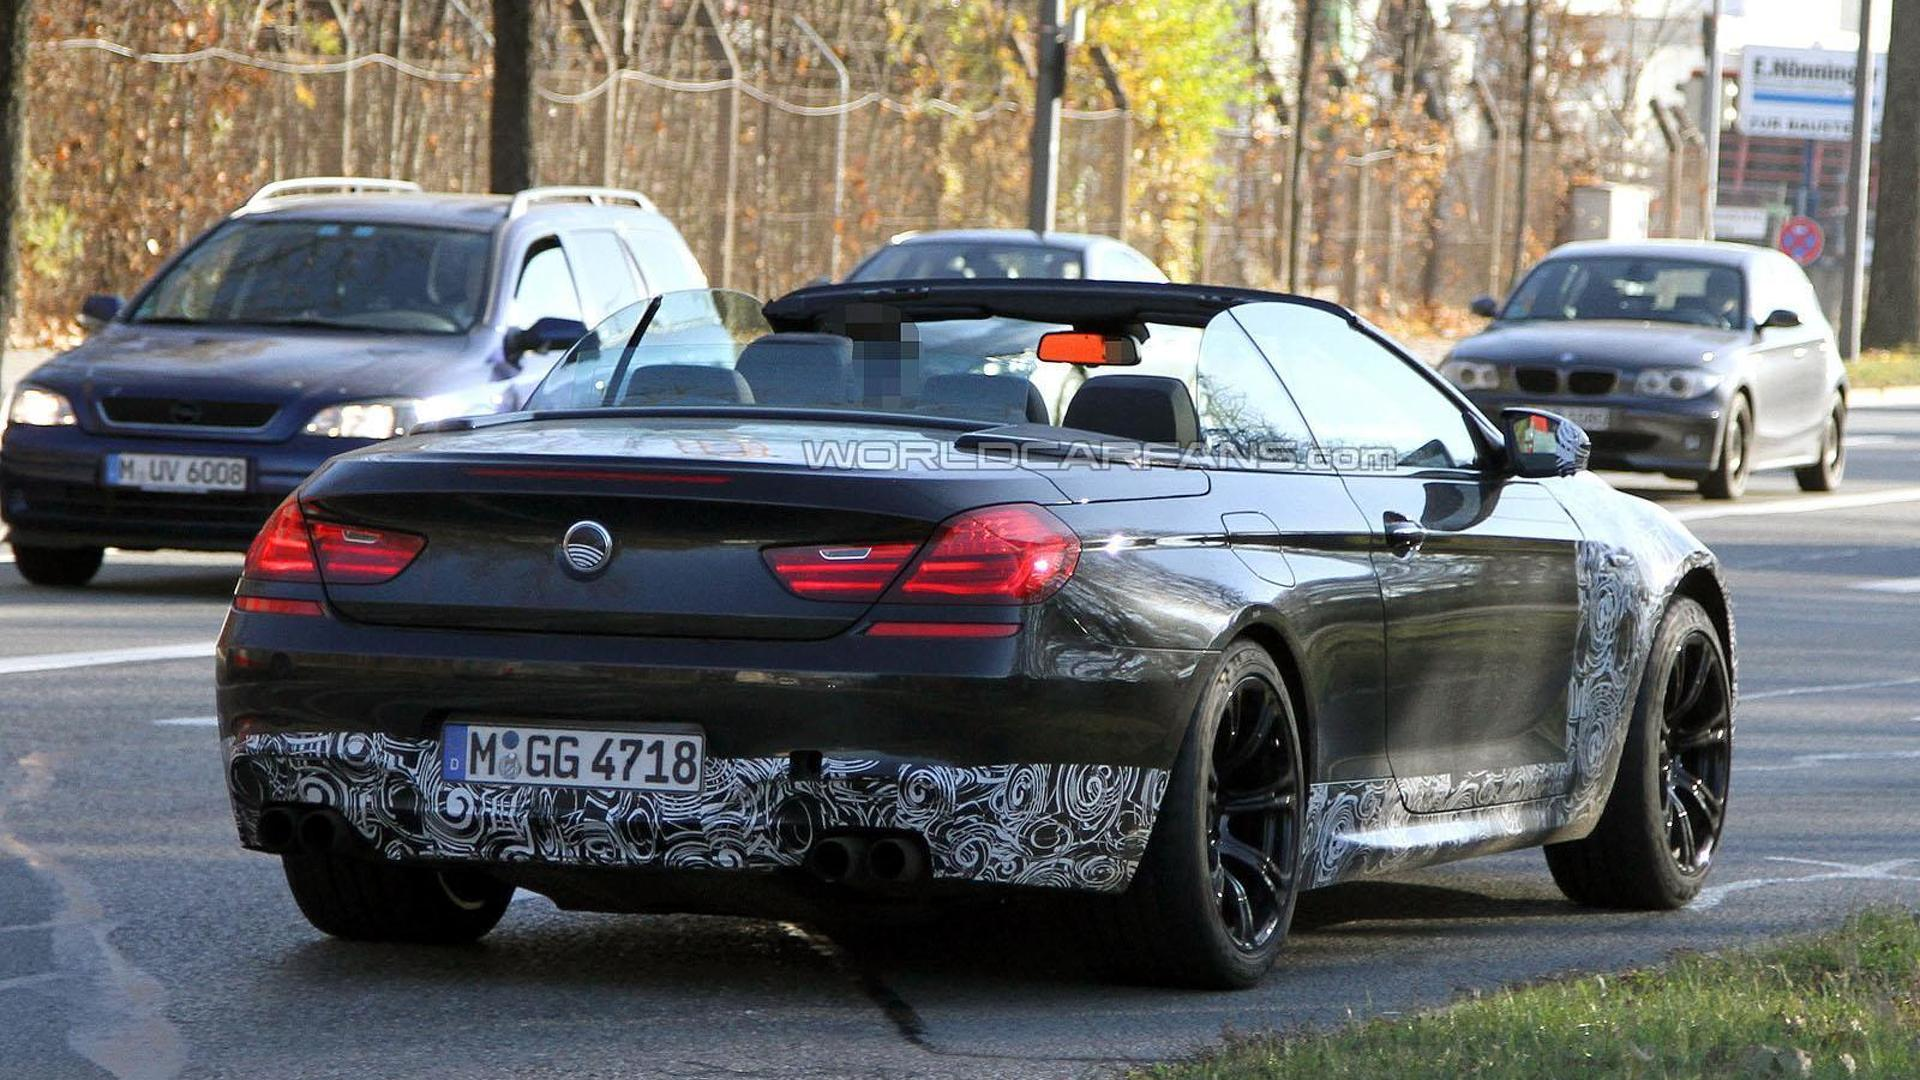 BMW M Cabrio Caught Topless - 2011 bmw m6